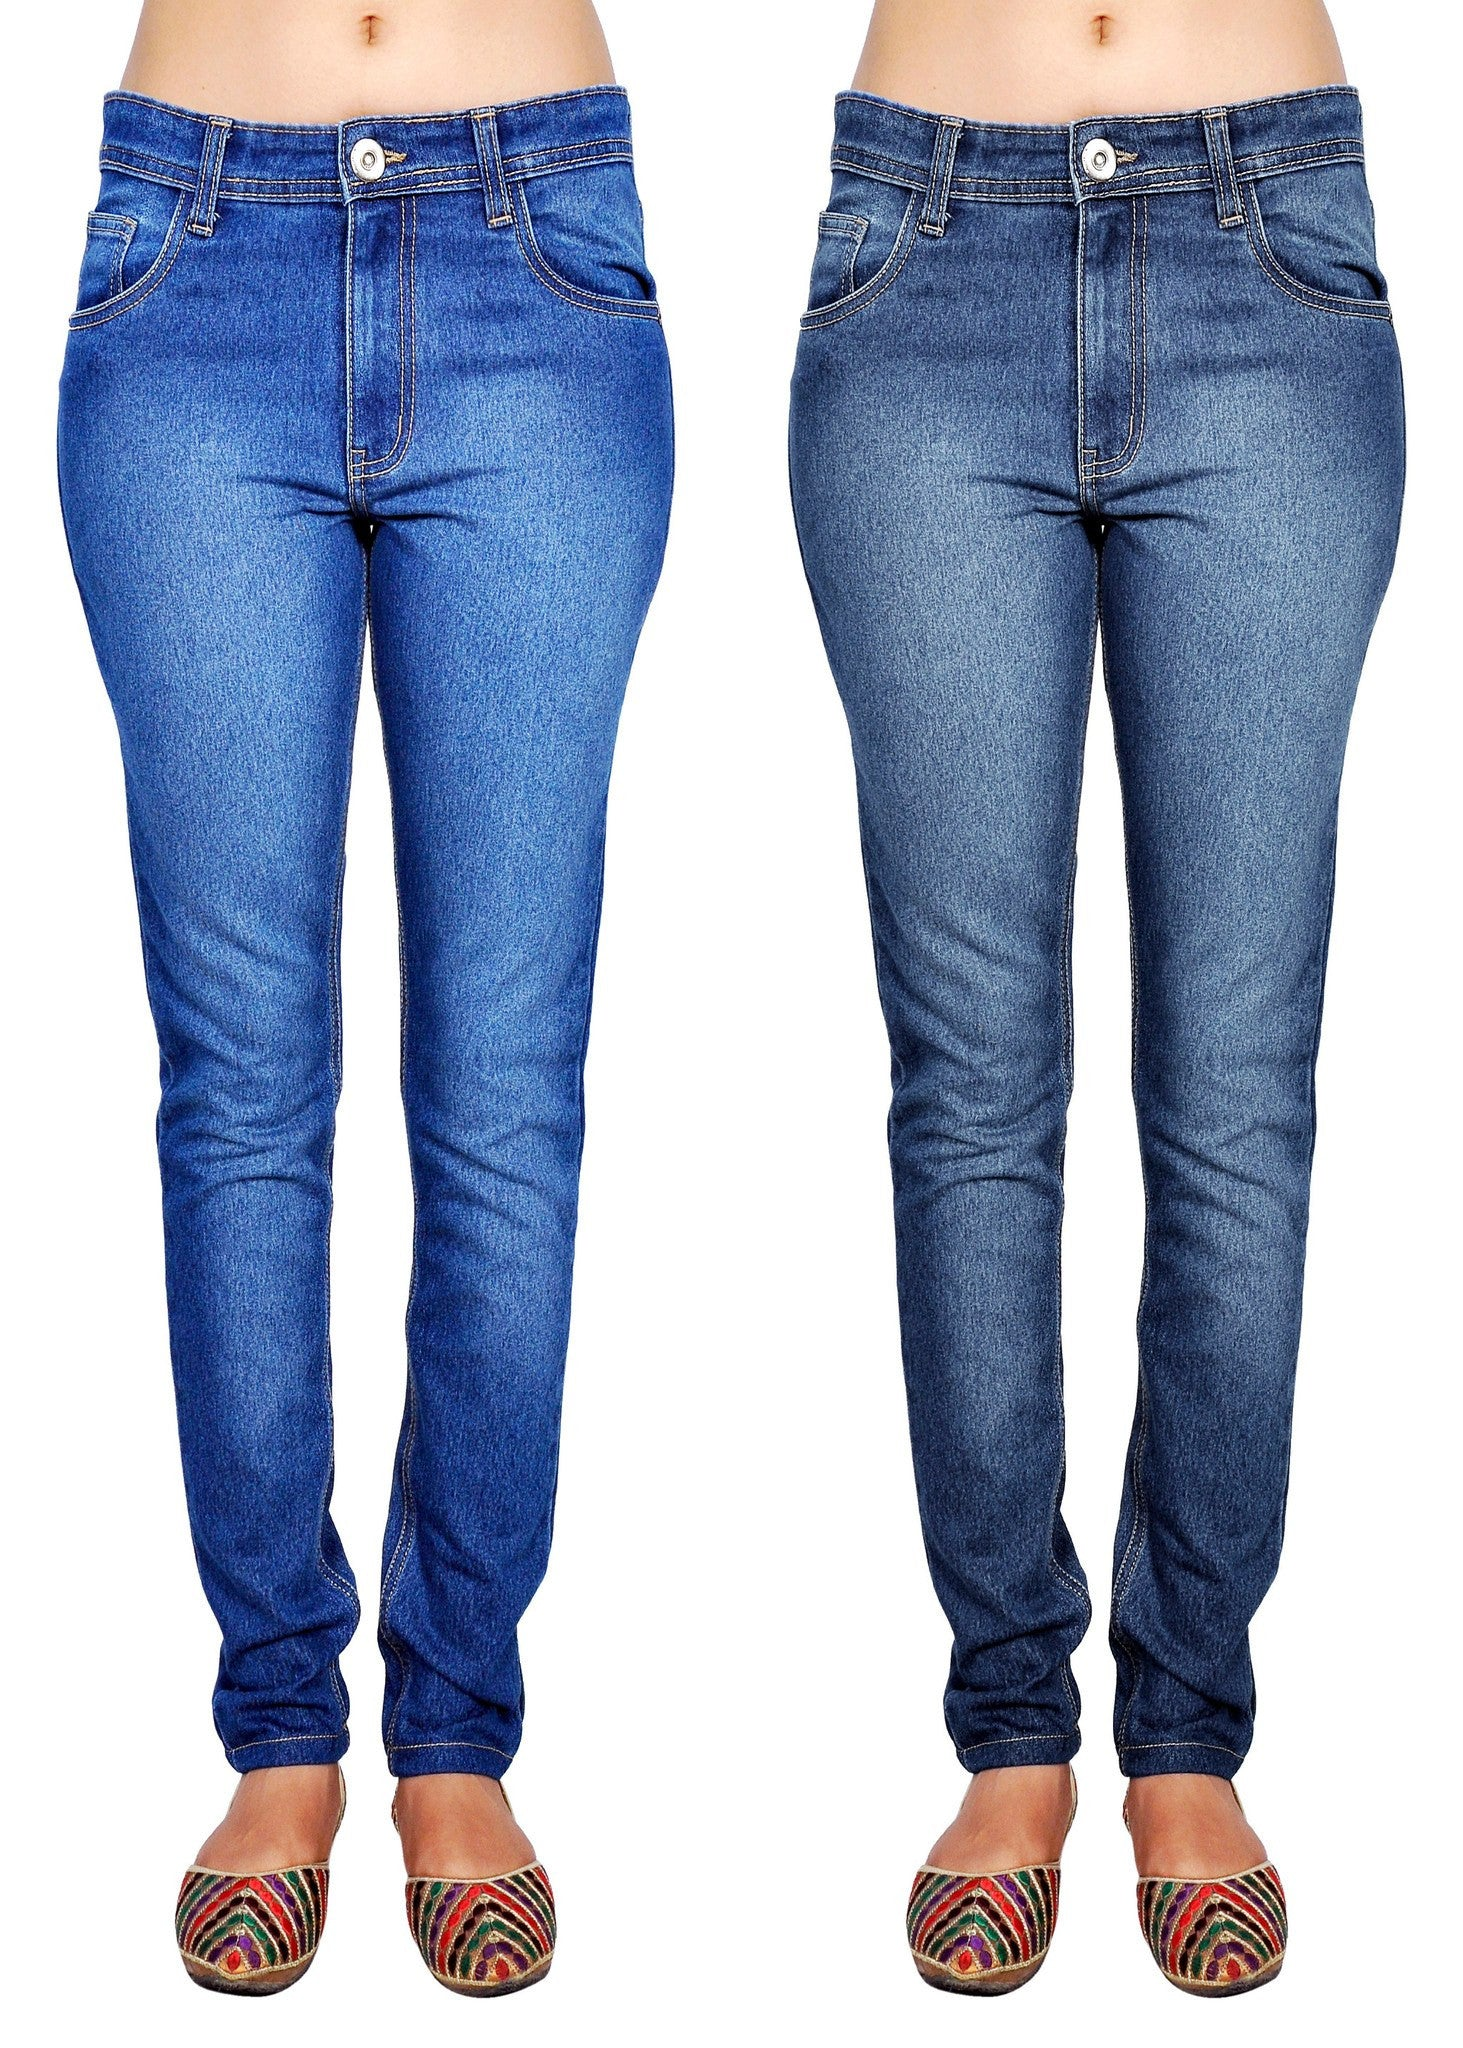 Shaded blue and dimgray slim fit jeans front view